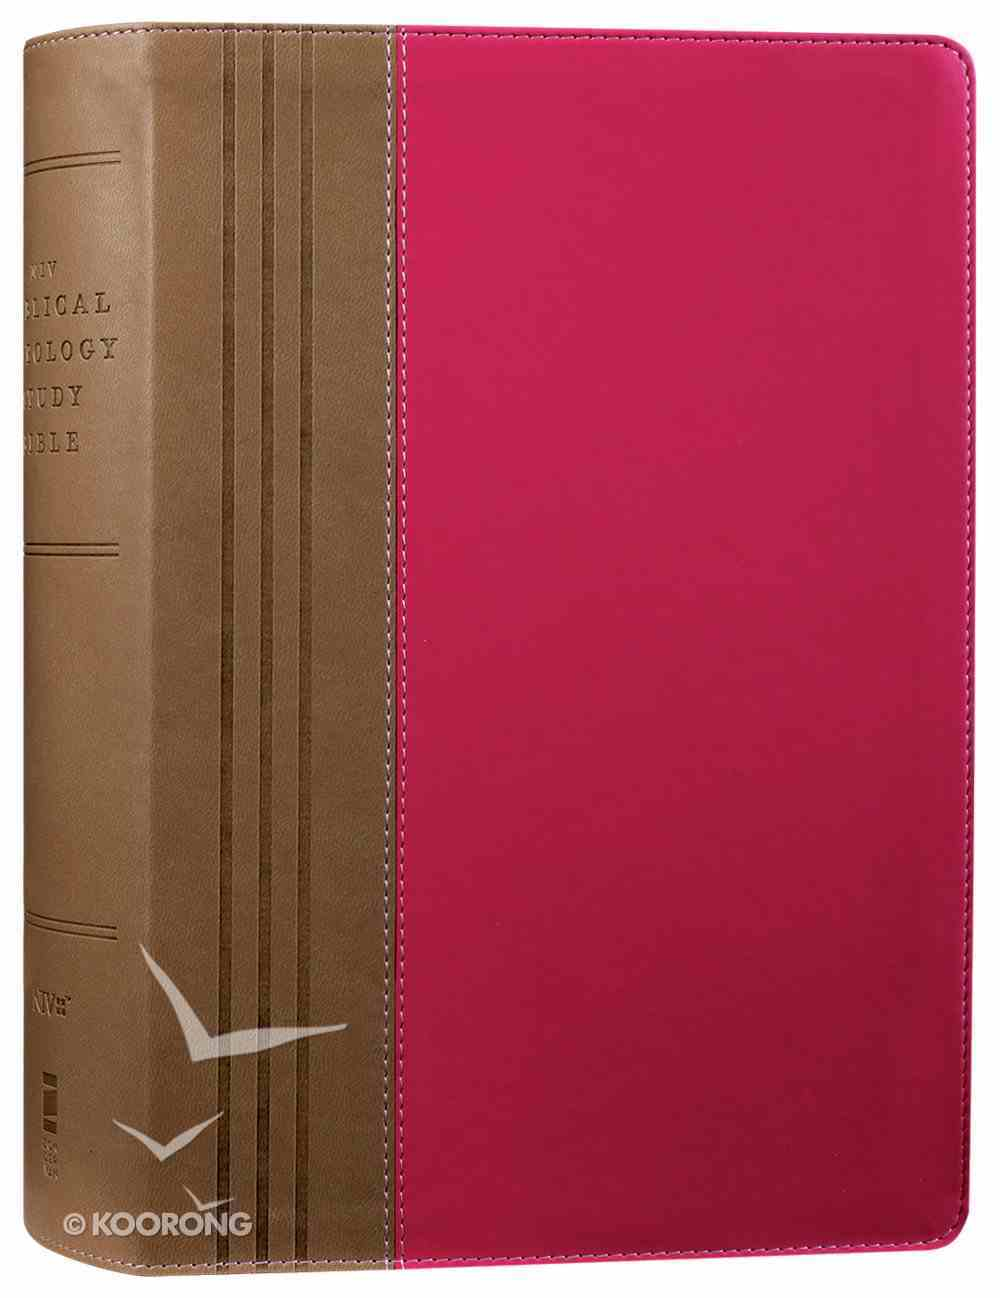 NIV Biblical Theology Study Bible Pink/Brown (Black Letter Edition) Premium Imitation Leather